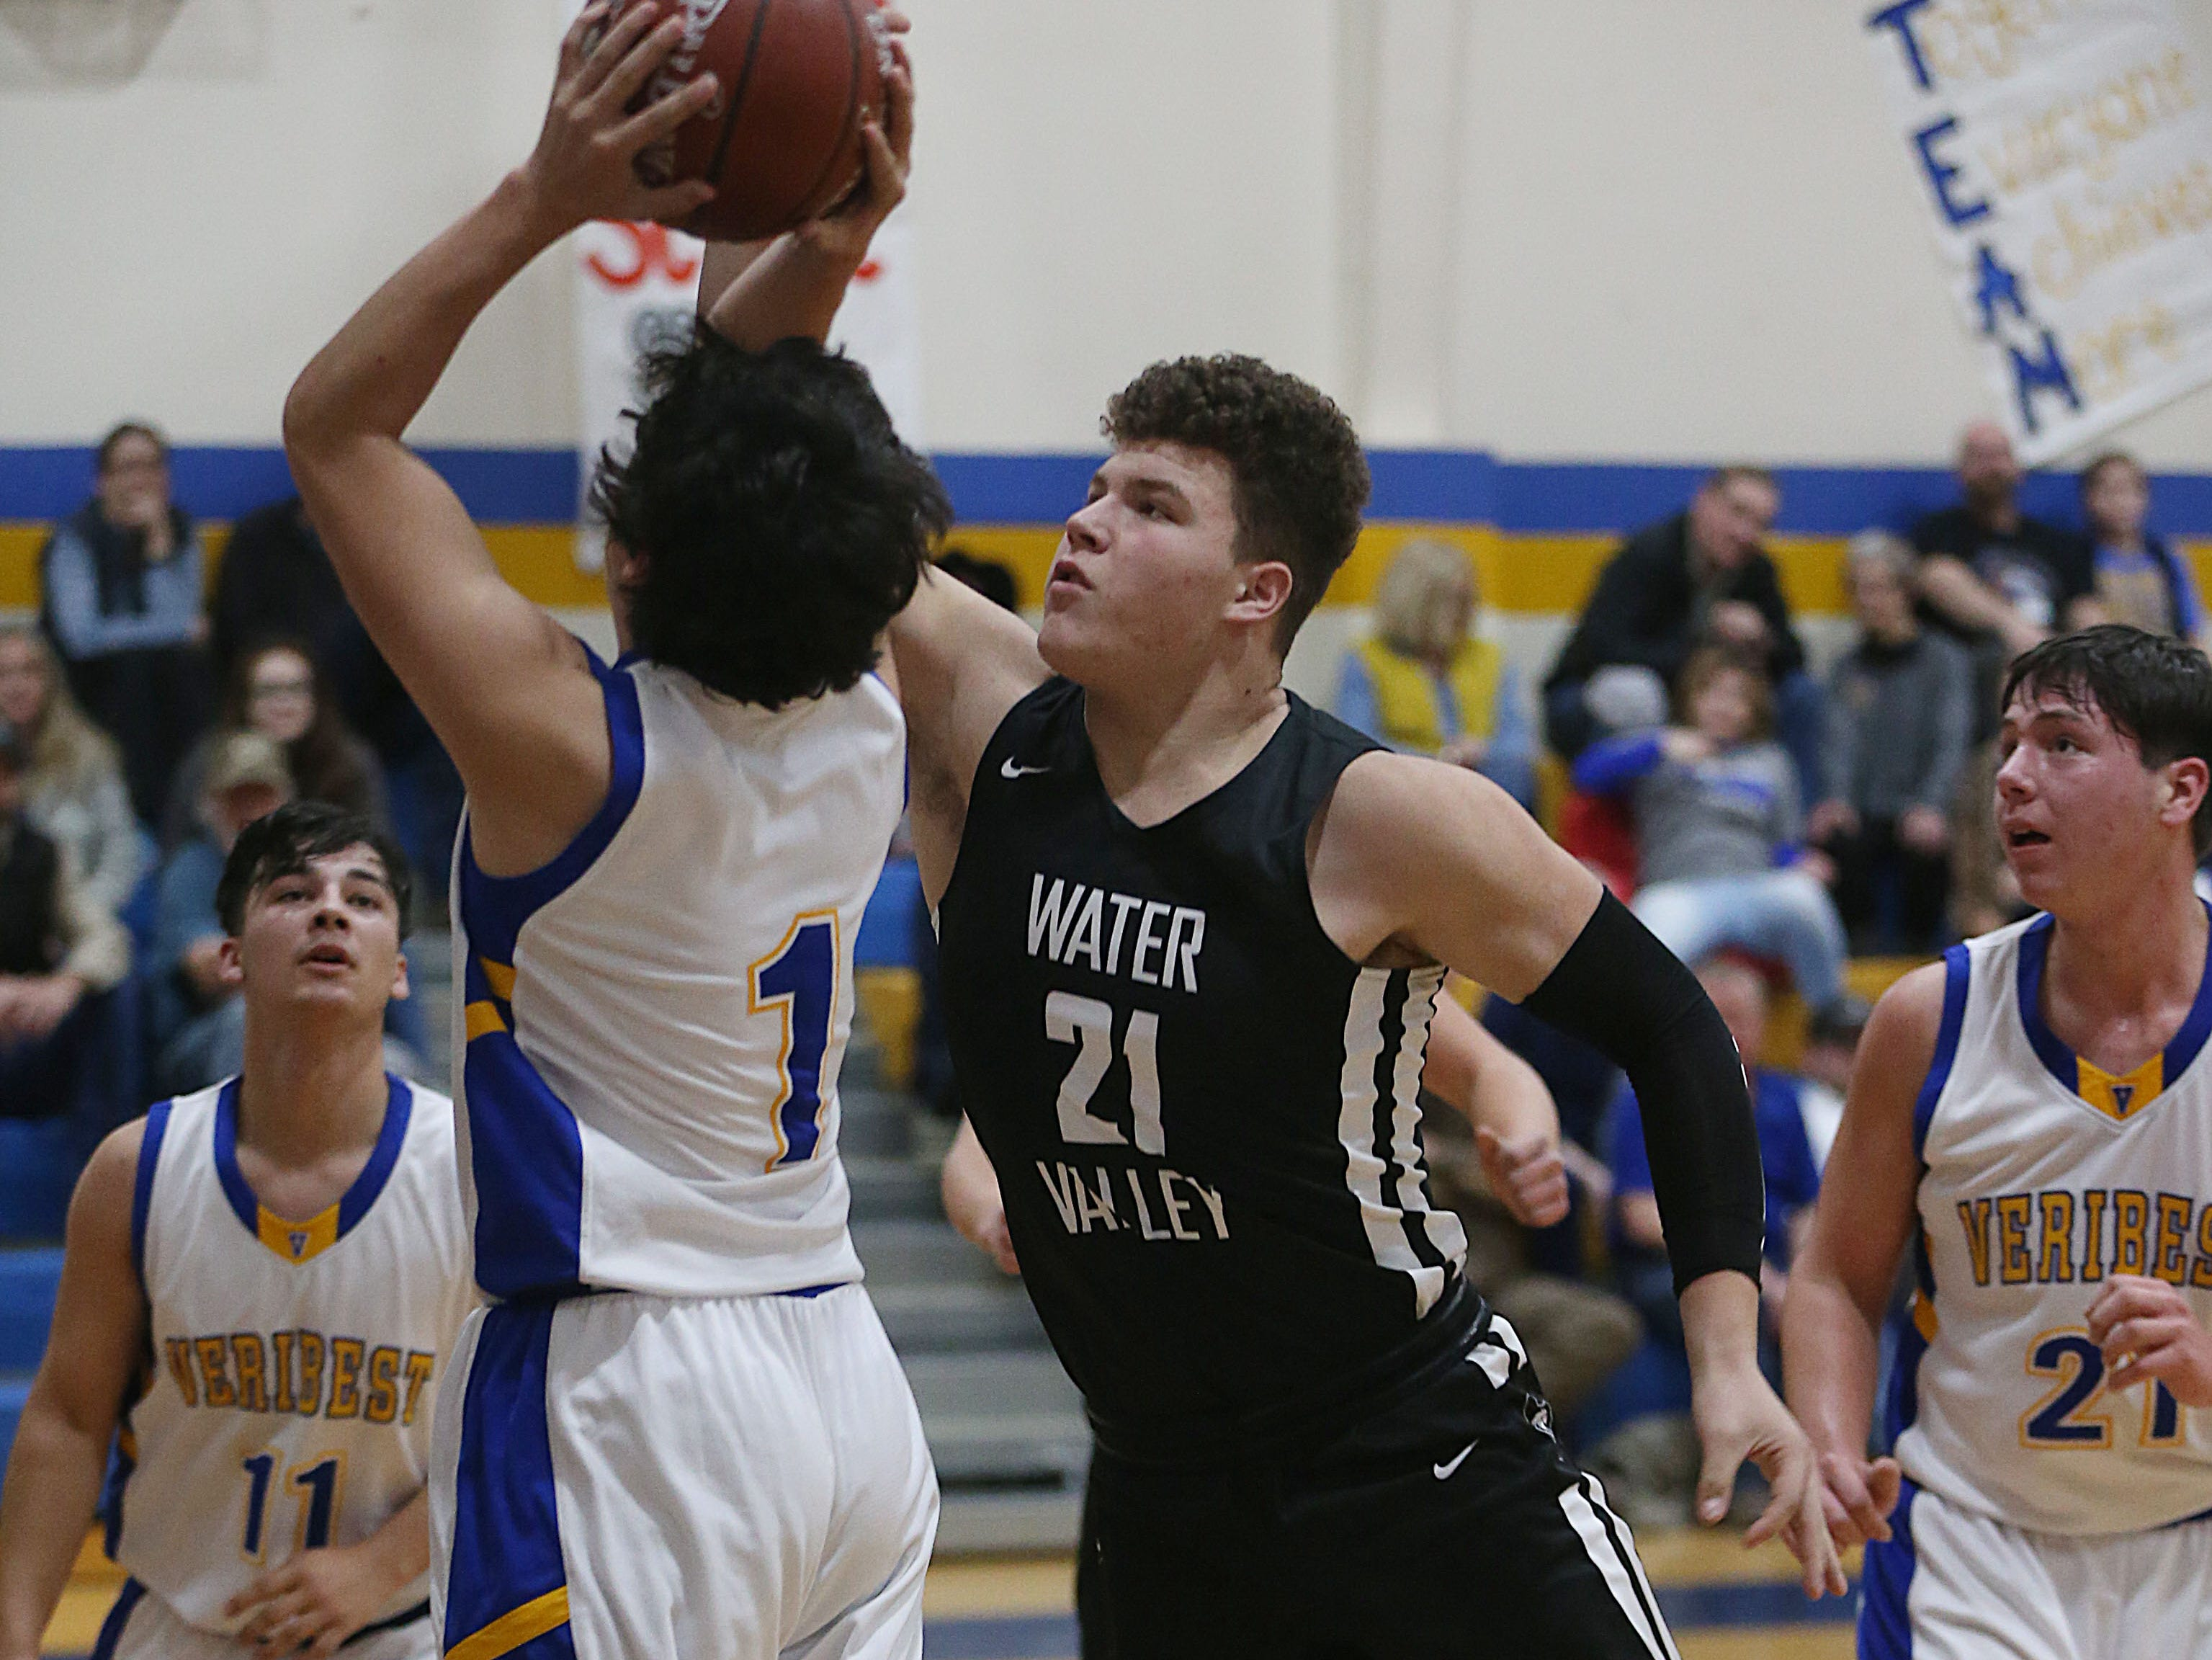 Water Valley's Harley Davis (#21) blocks a shot Tuesday, Jan. 8, 2019 from a Veribest player during the game in Veribest.